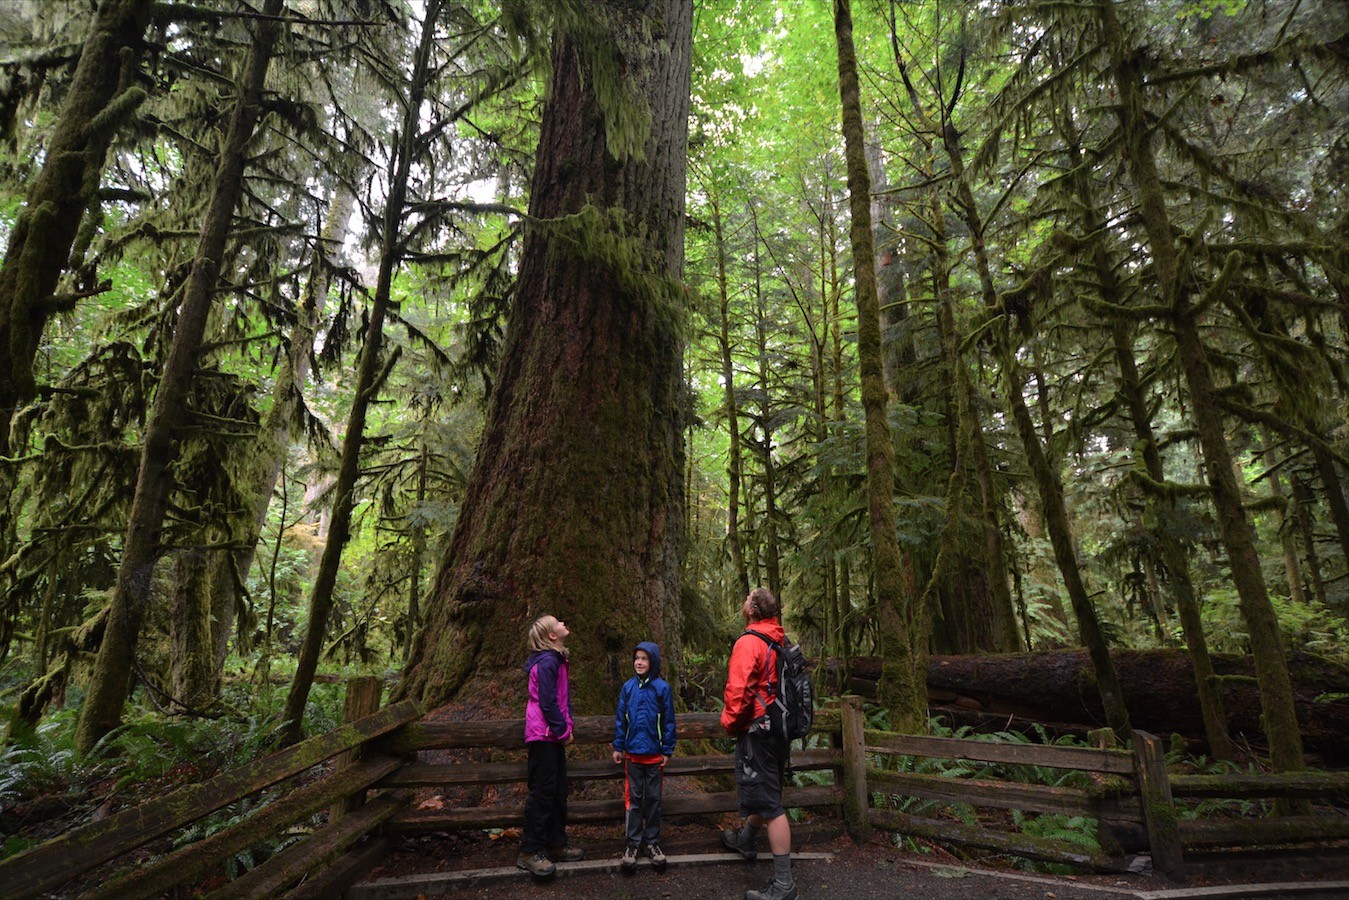 A family stares up at giant redwood trees in the rainforests of the Olympic Peninsula, Washington